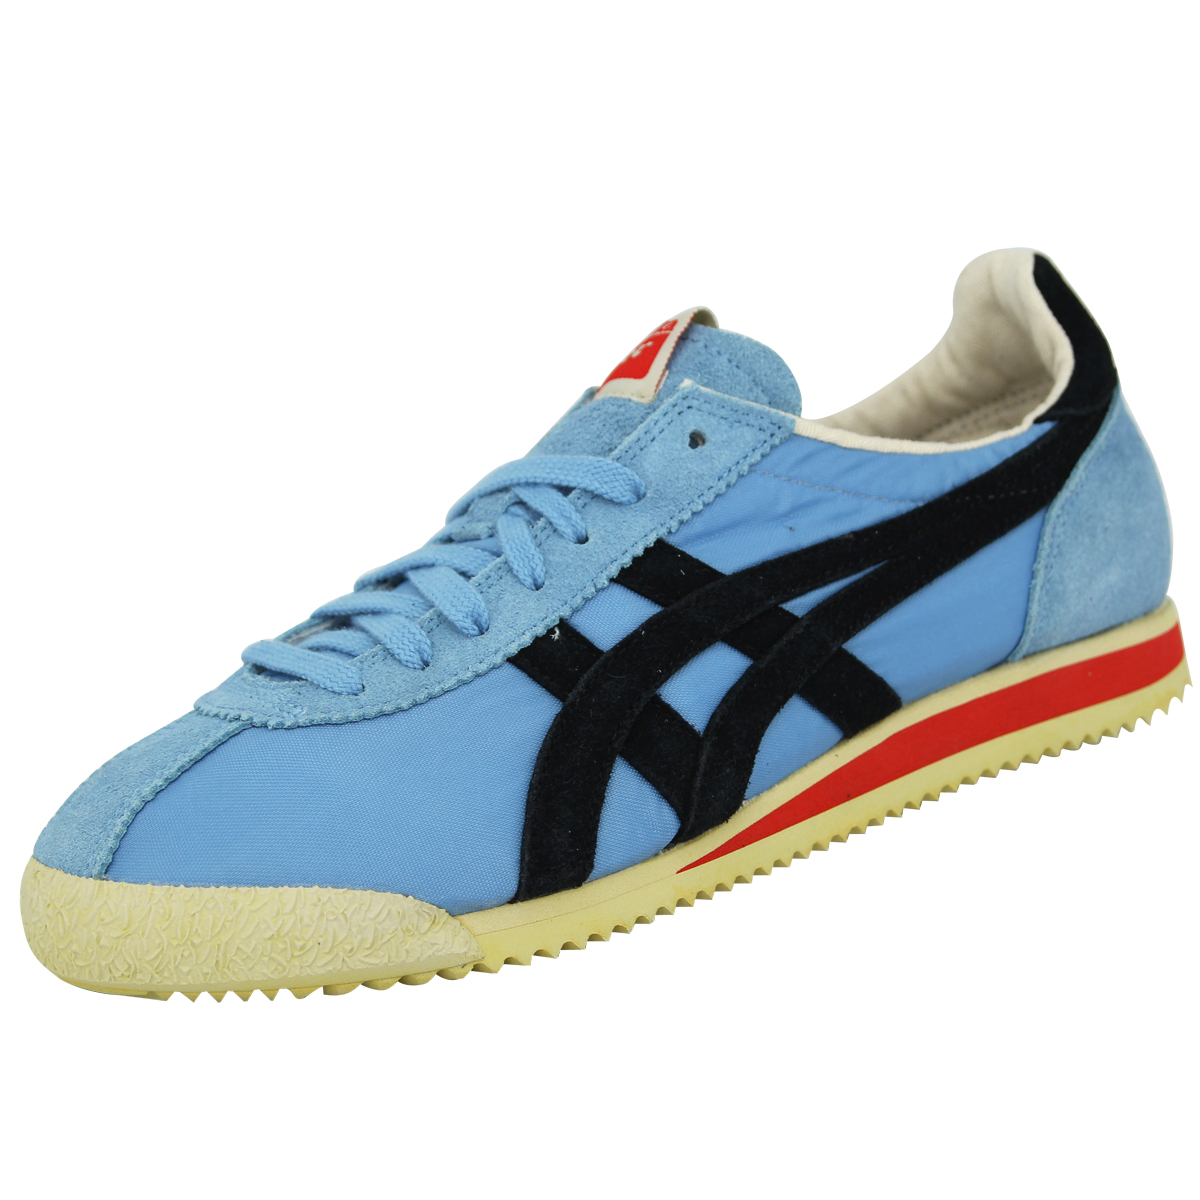 Asics TIGER CORSAIR VIN bluee Unisex Sneaers shoes